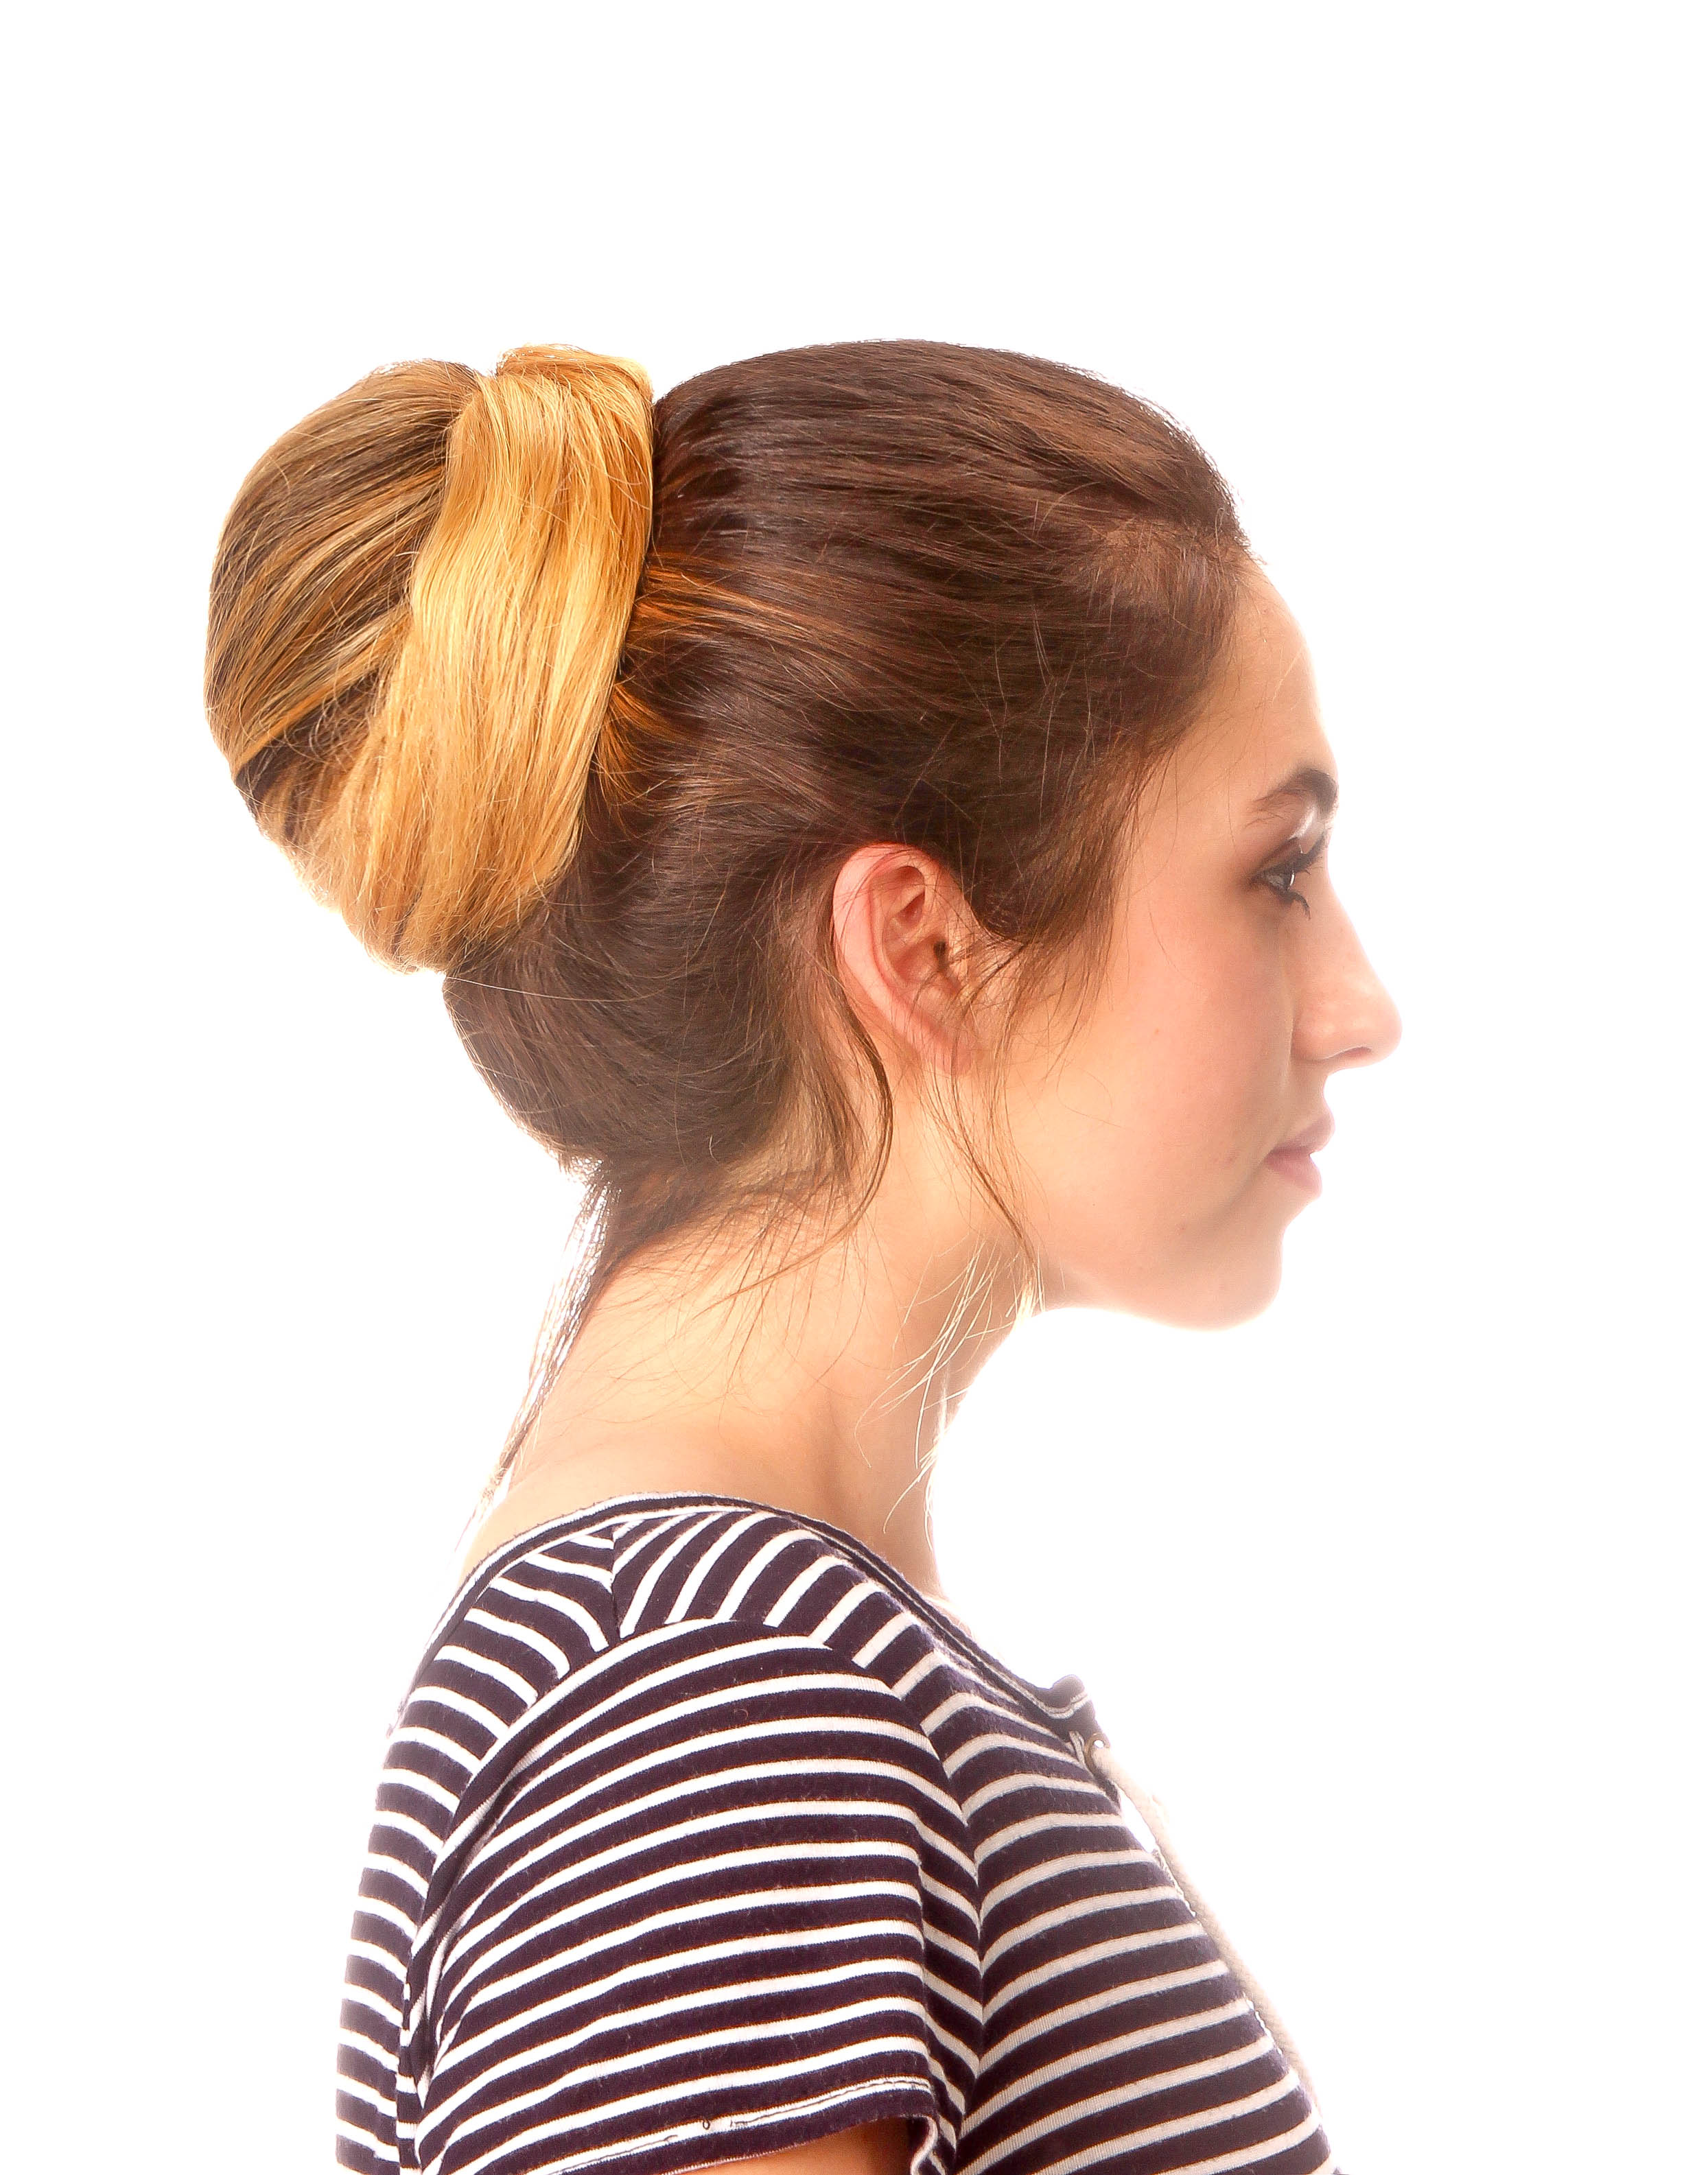 The Messy Bun Maker Poof! - Size Medium - Brown - The Hair Thing